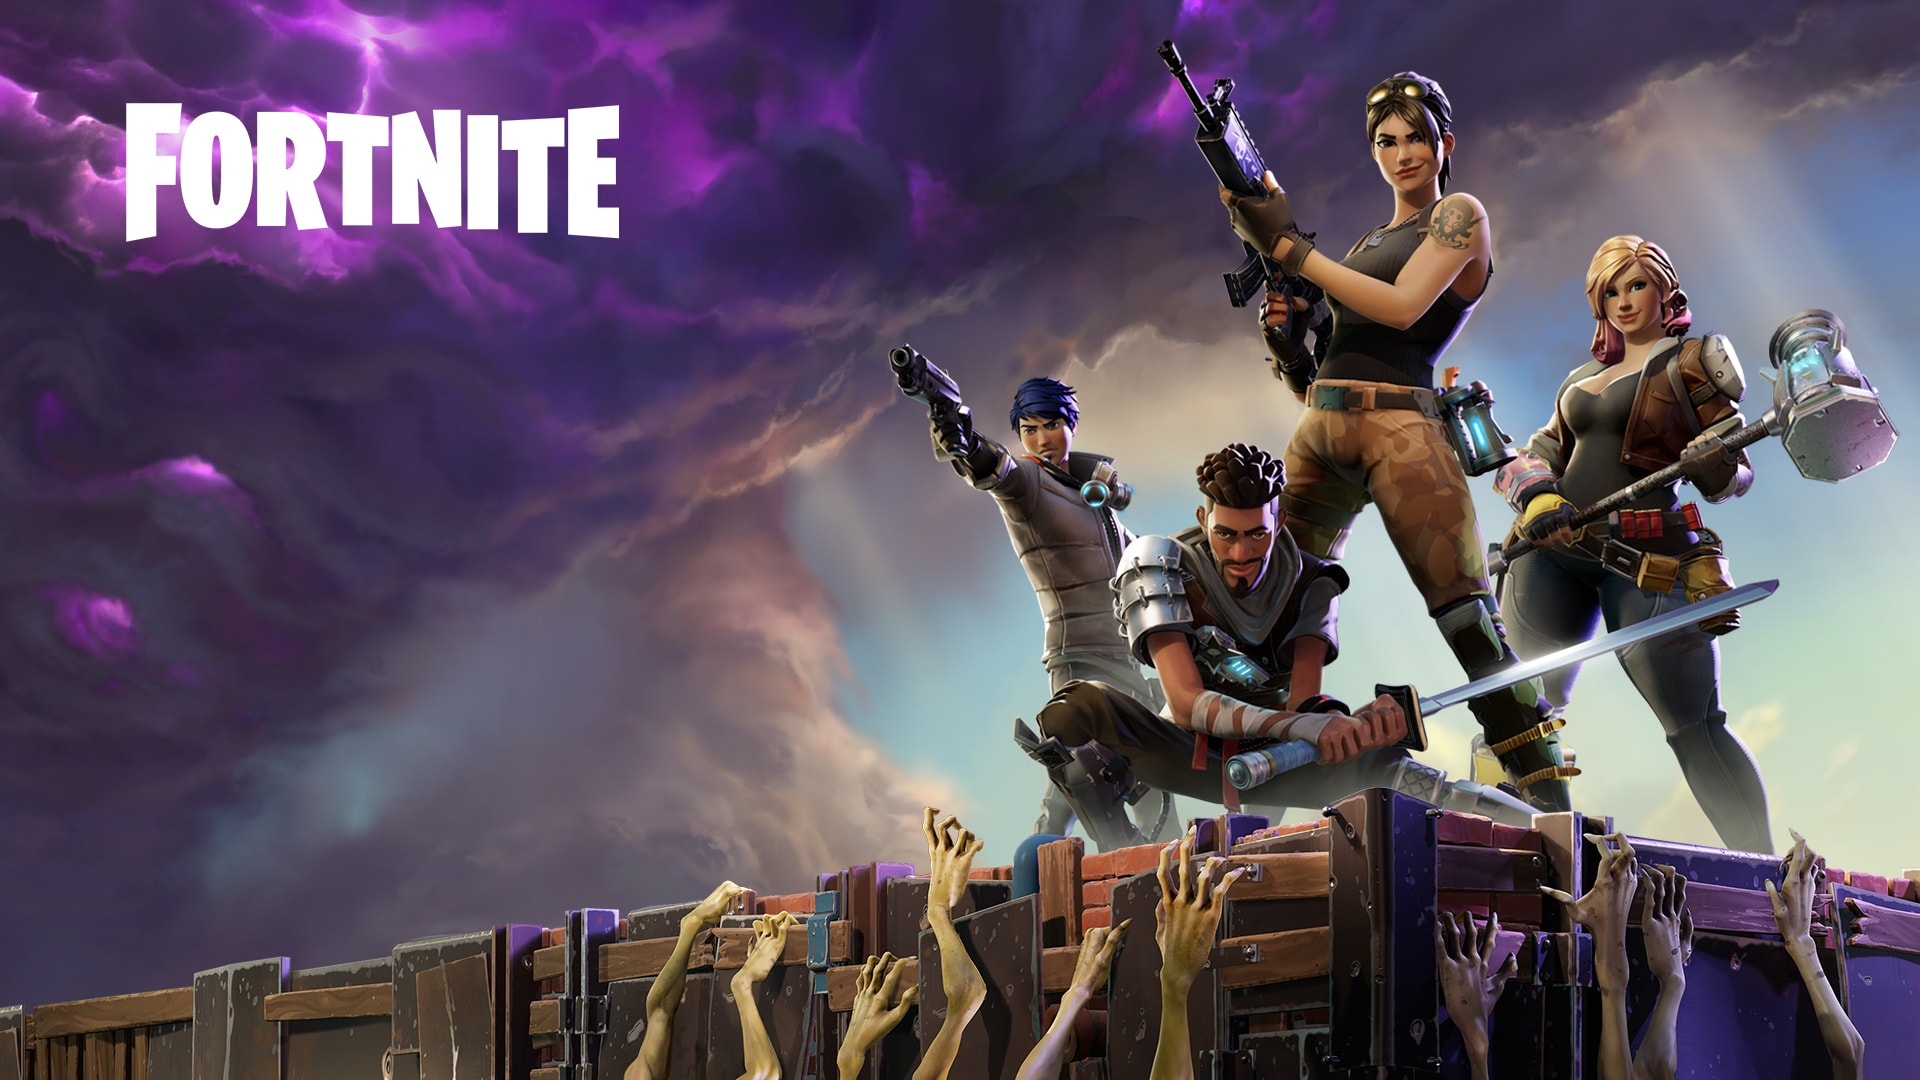 'Fortnite Year One in 6 minutes' video remembers the early days of Fortnite